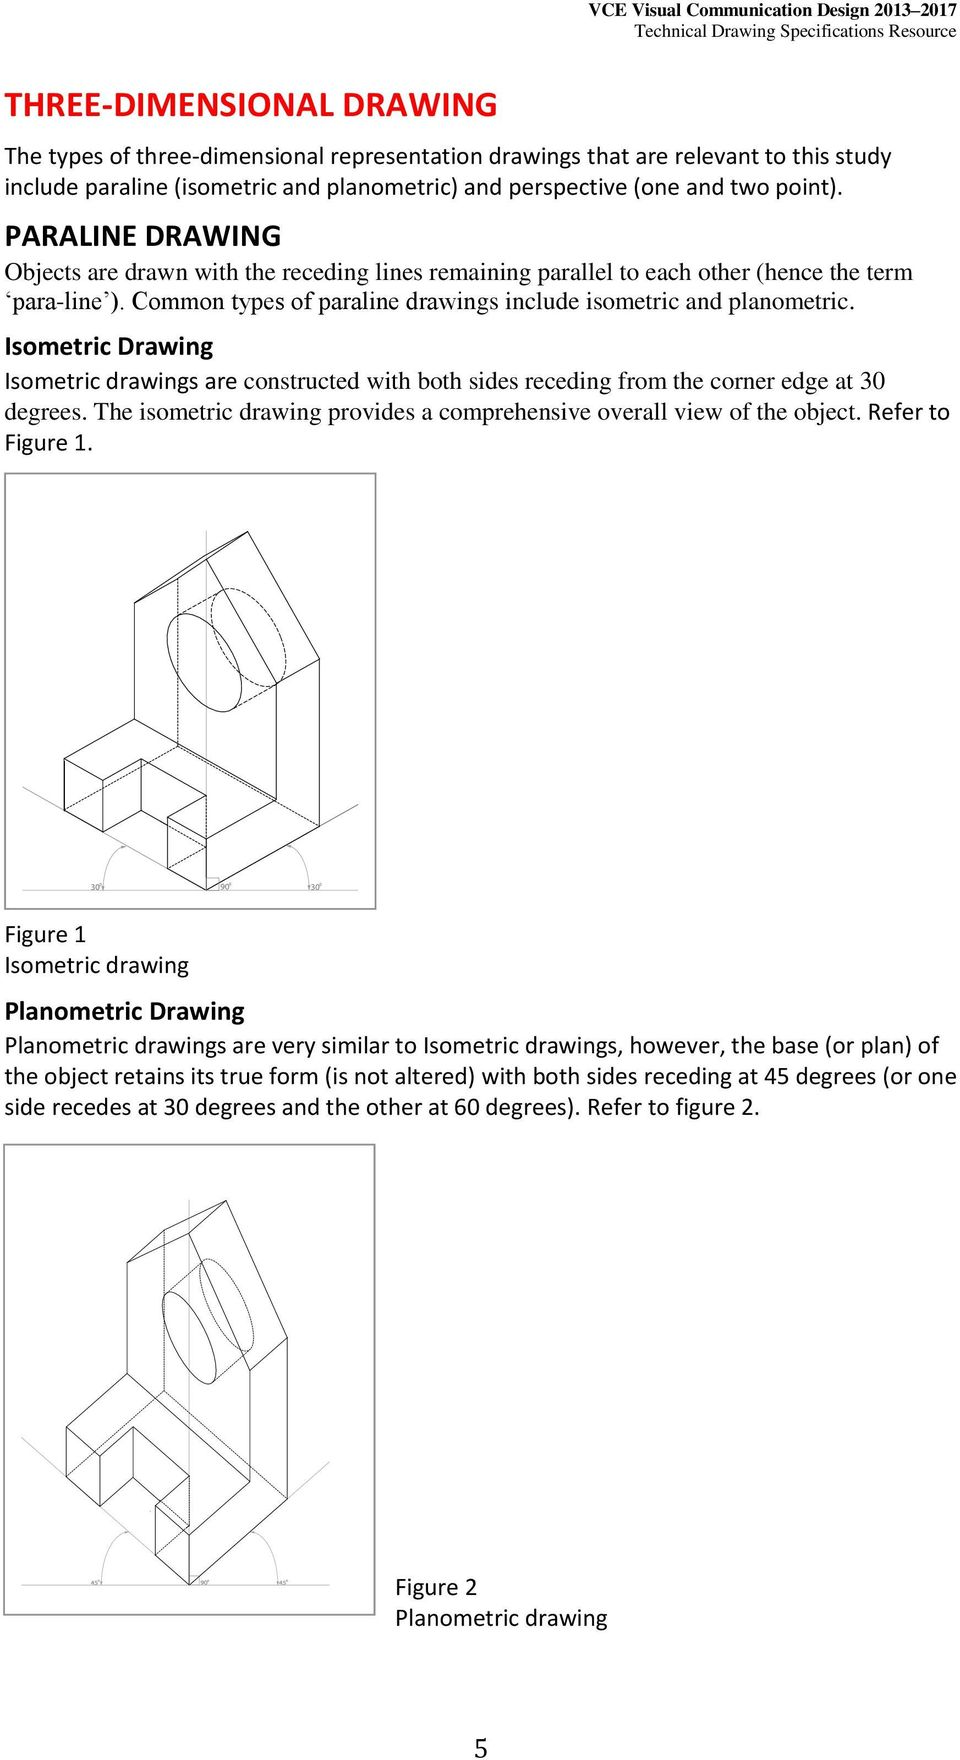 Isometric Drawing Isometric drawings are constructed with both sides receding from the corner edge at 30 degrees. The isometric drawing provides a comprehensive overall view of the object.